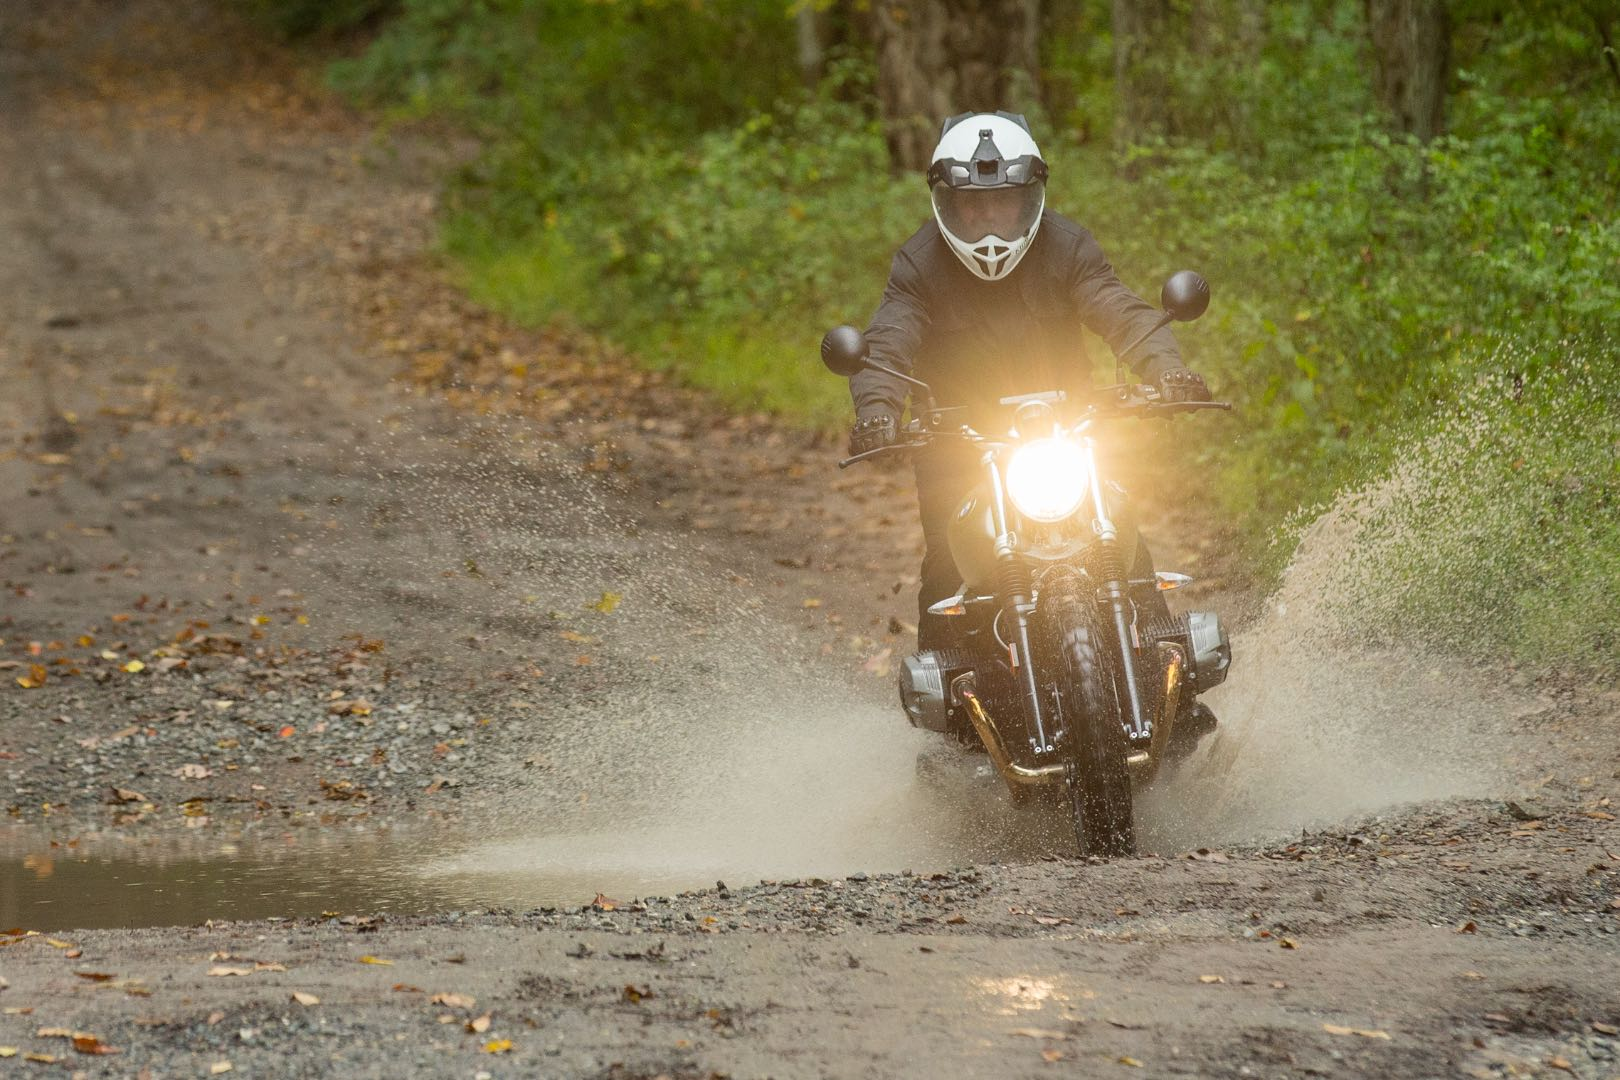 2017 BMW R nineT Scrambler in dirt